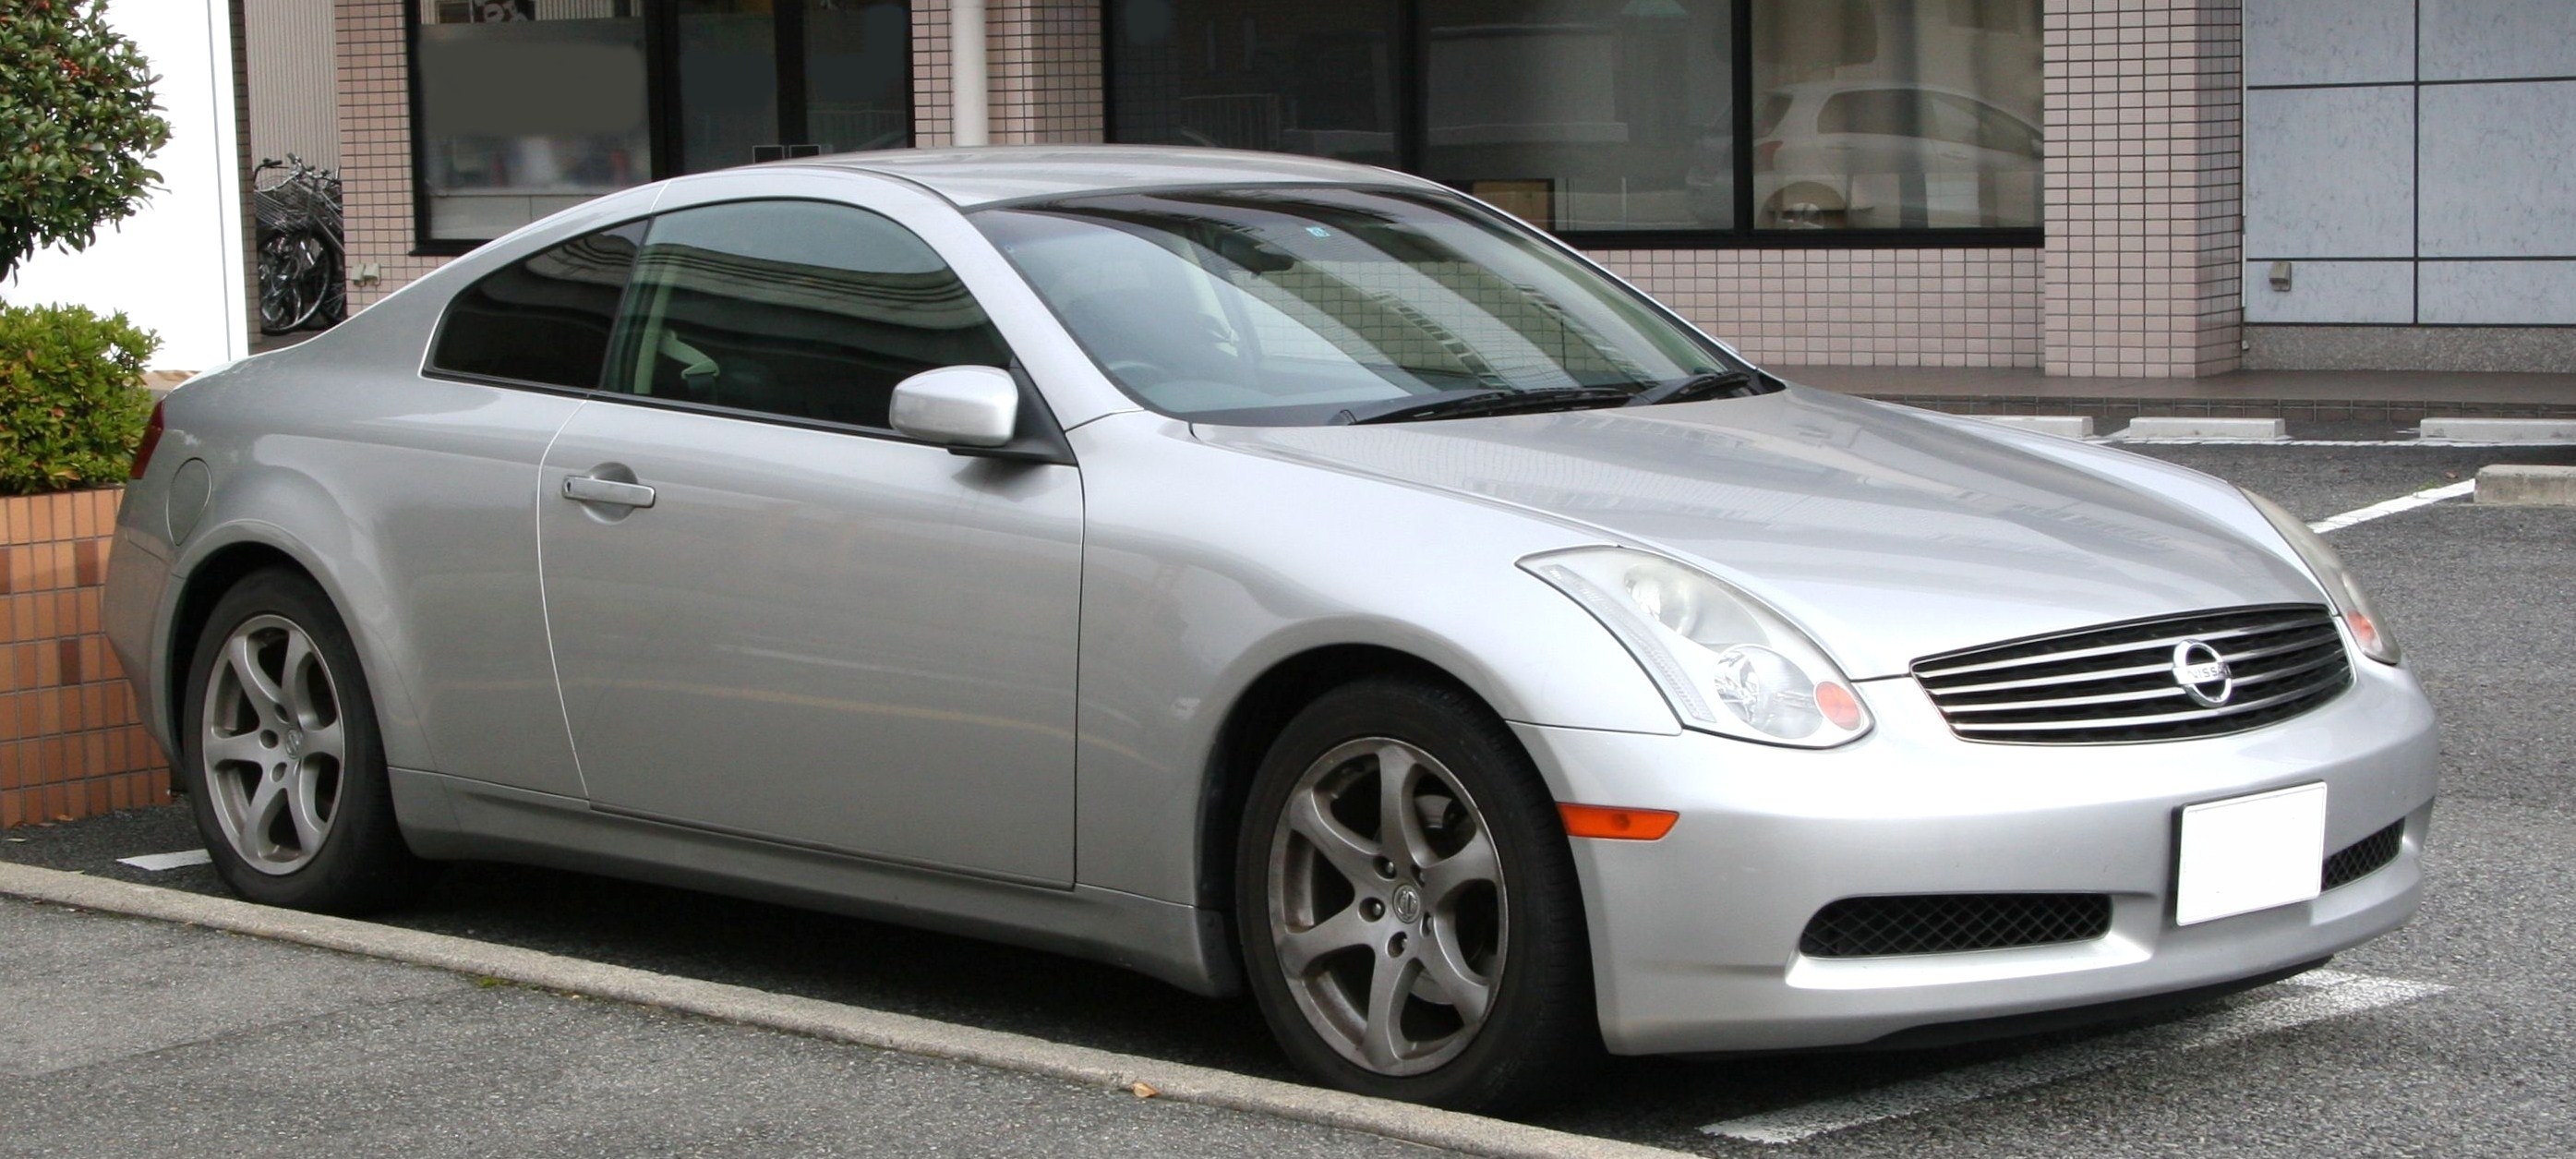 File 2003 2005 Nissan Skyline Coupe 5at Jpg Wikimedia